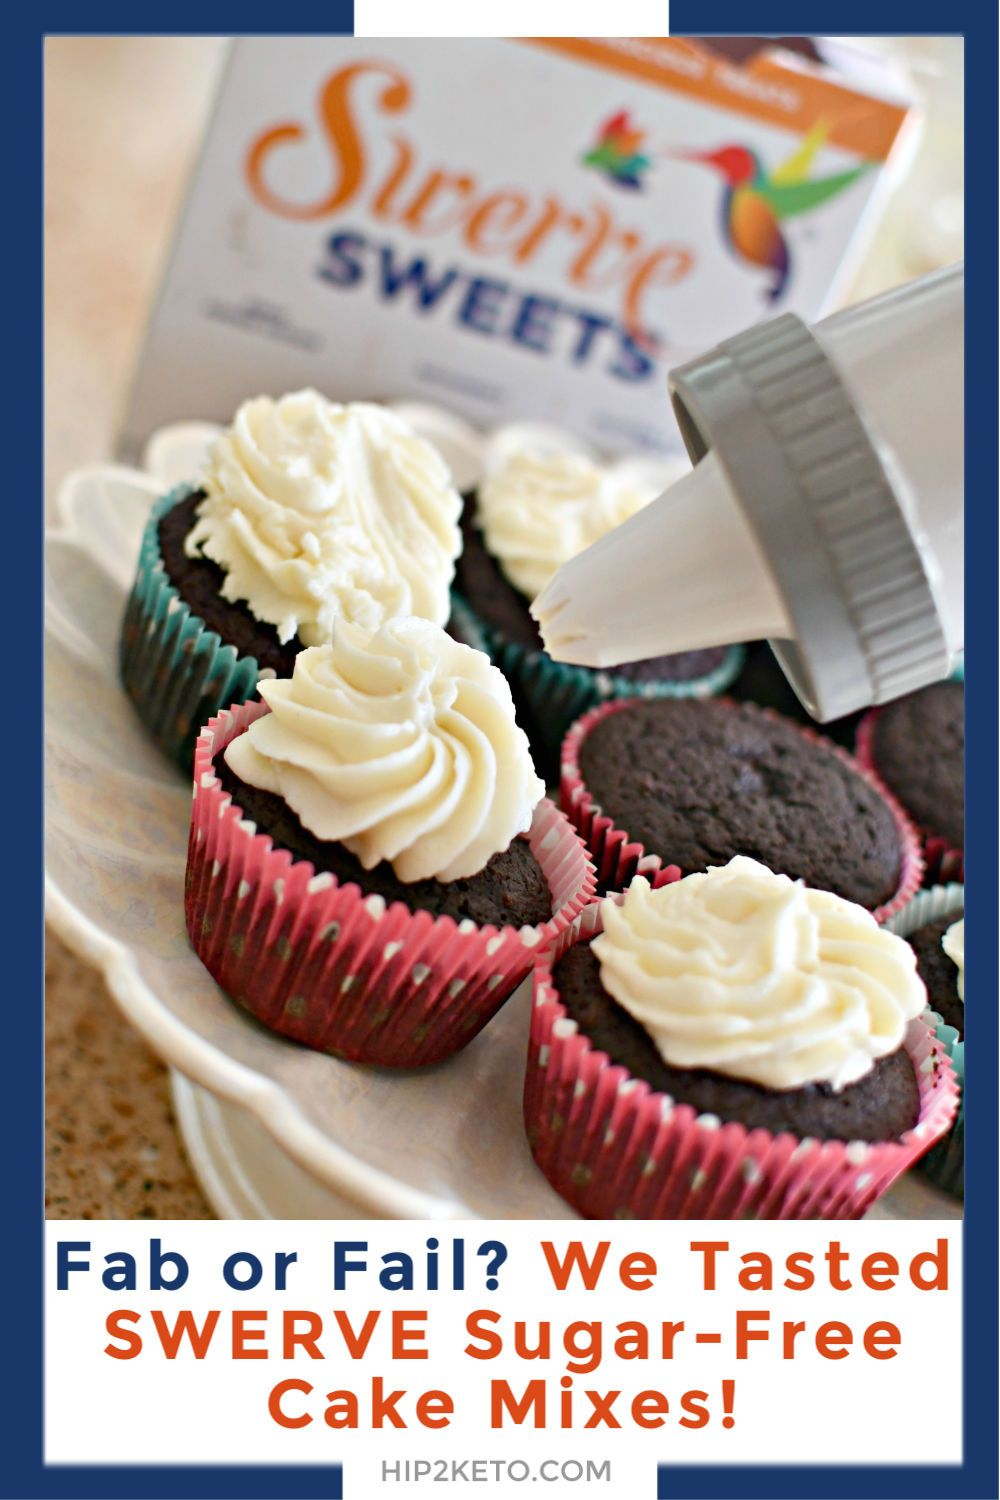 Fab or fail we tasted swerve keto cake mixes they may